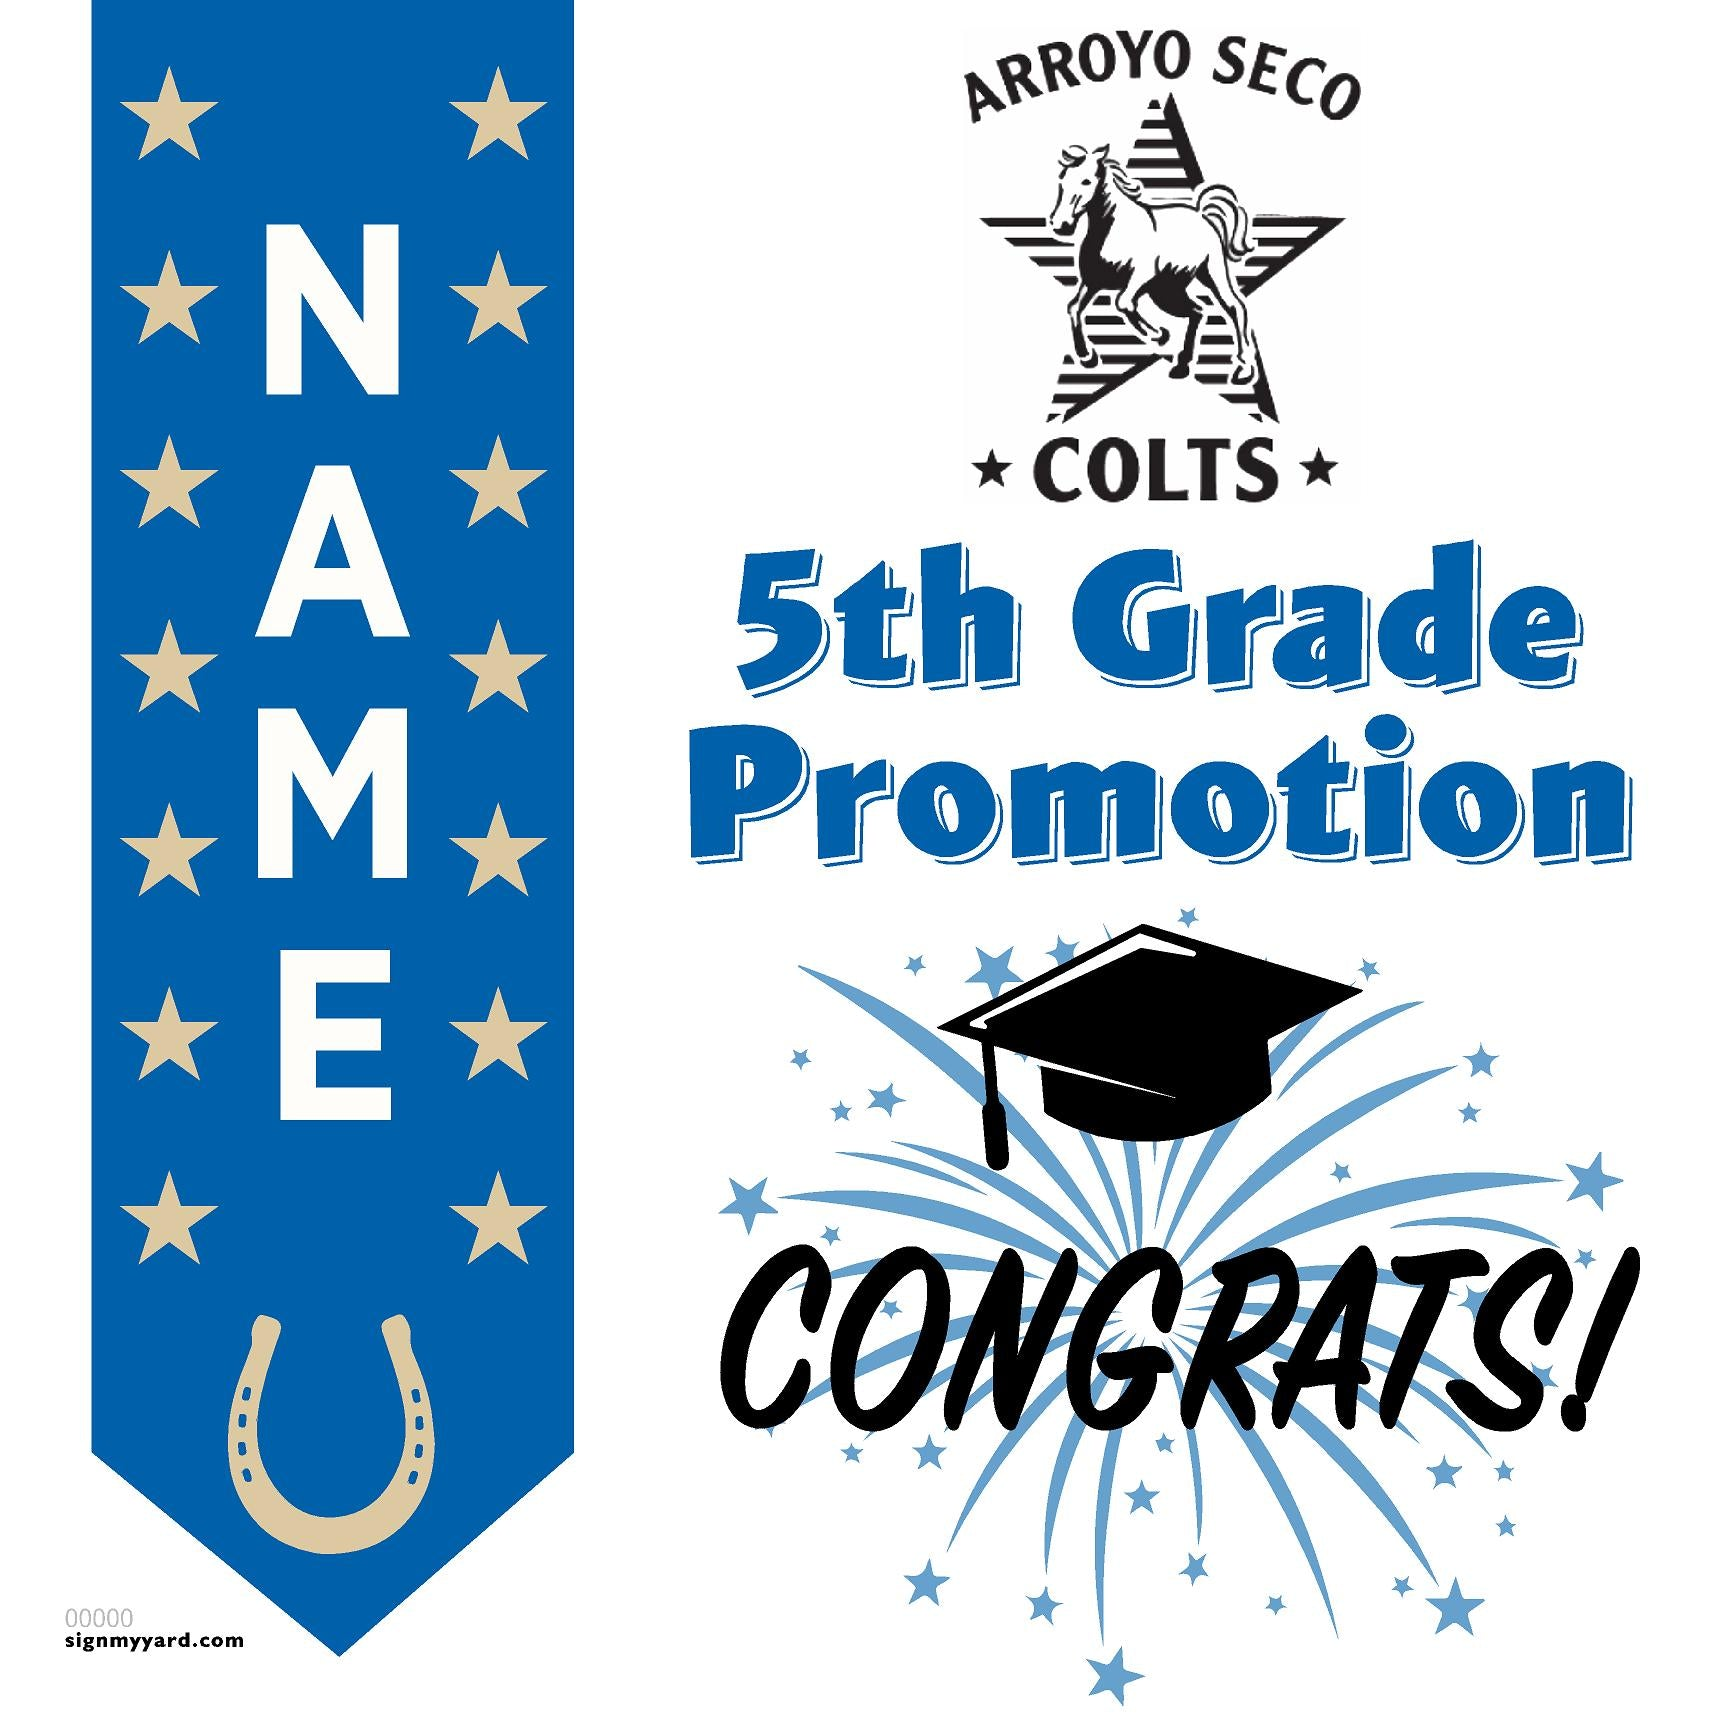 Arroyo Seco Elementary School 5th Grade Promotion 24x24 #shineon2027 Yard Sign (Option B)